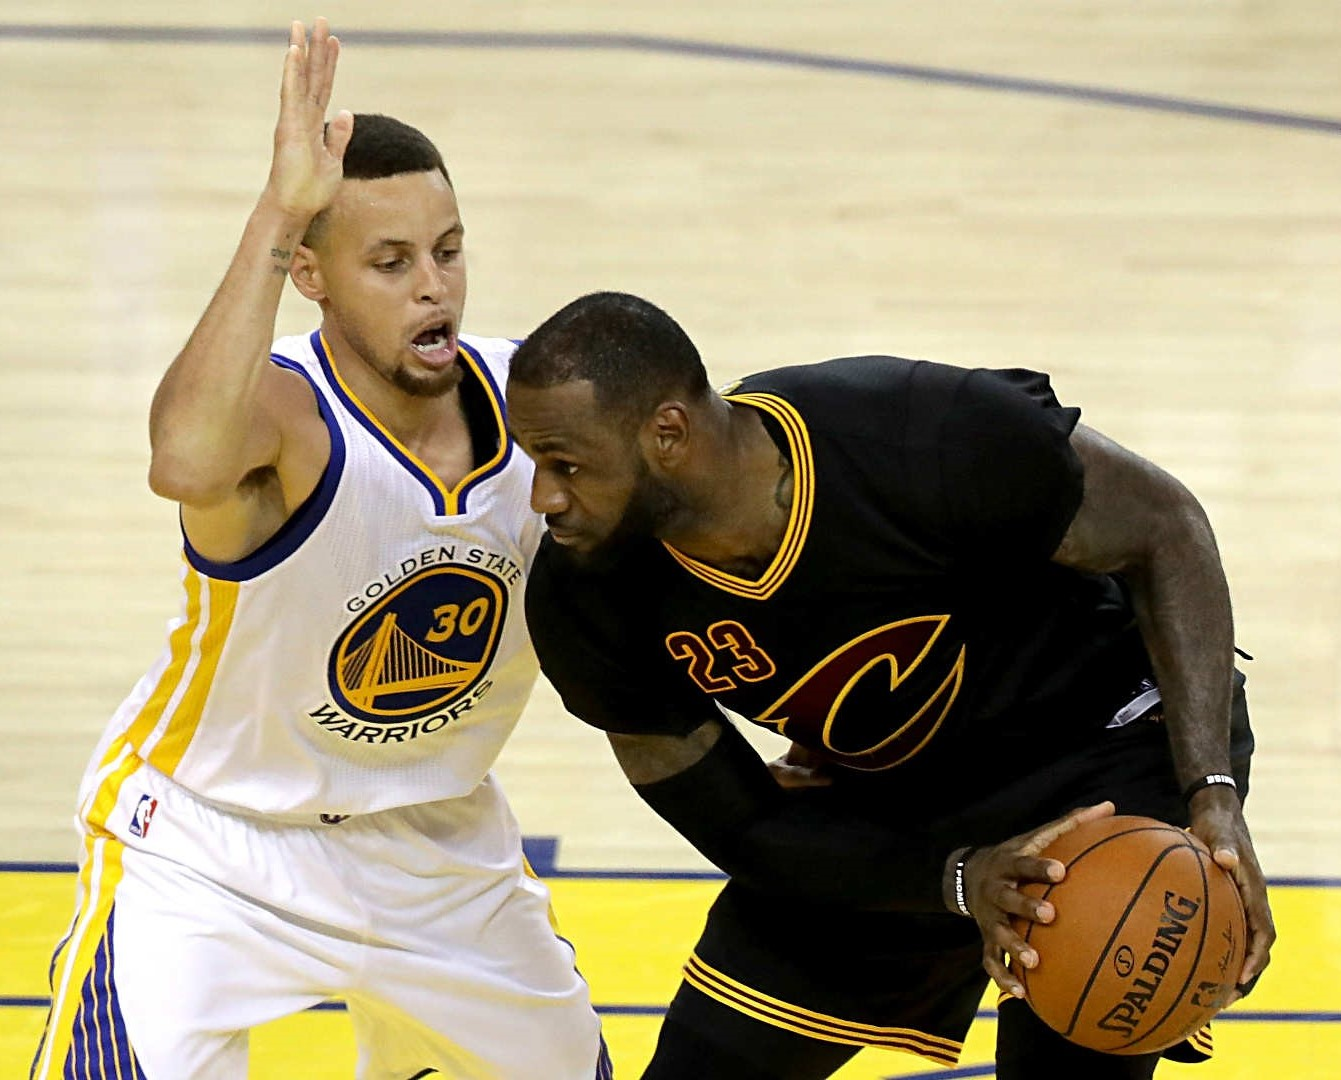 curry-james-021817-usnews-getty-ftr_btvg515abv9d1luo6p8bhlbfq